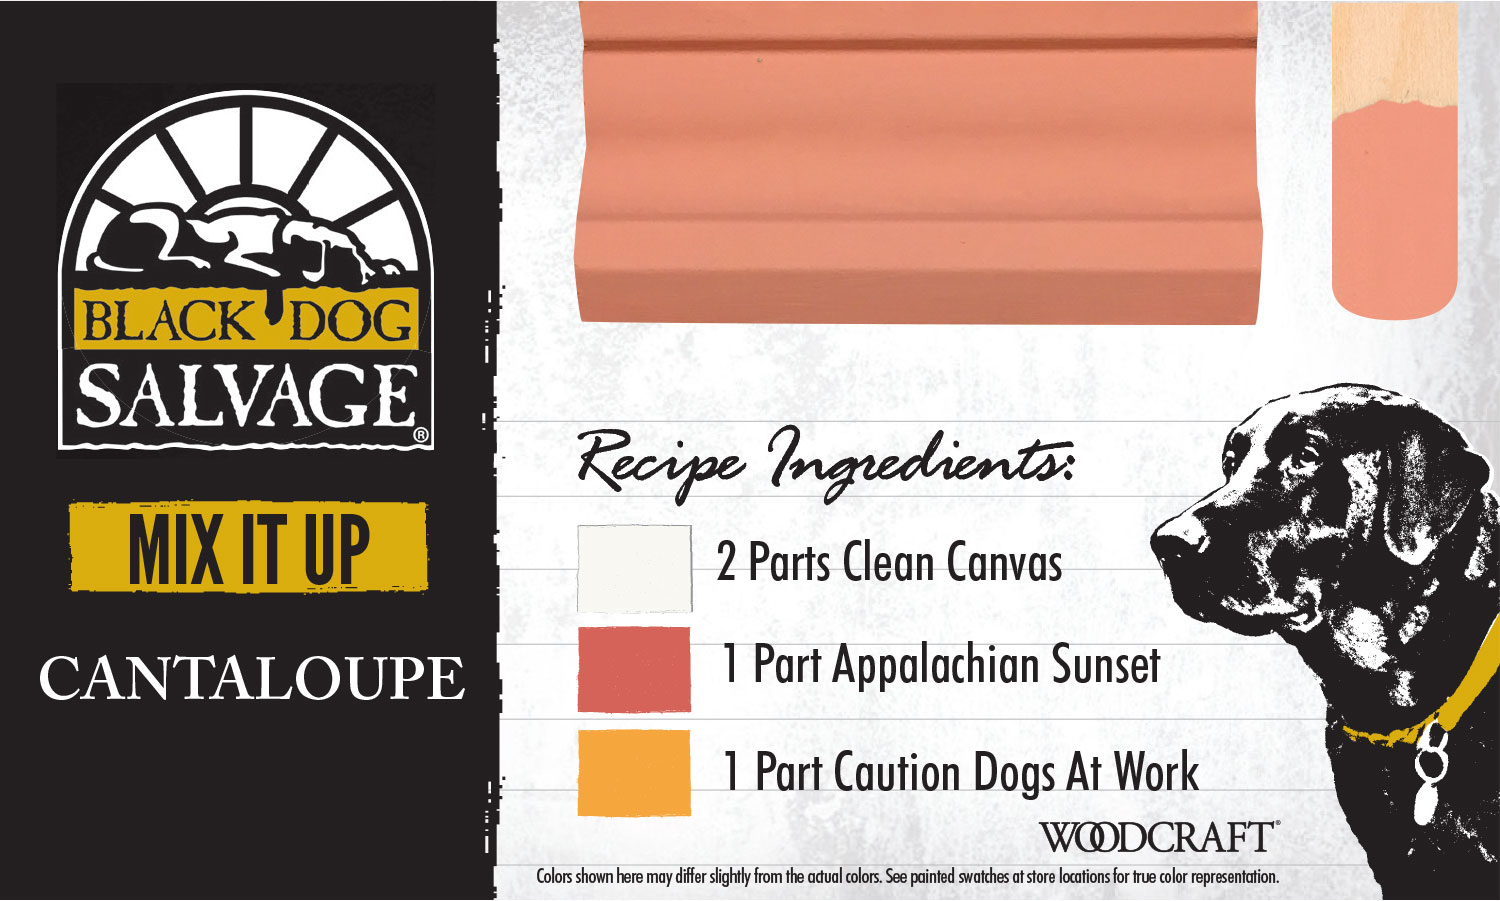 """""""Cantaloupe"""" is made from 2 Parts """"Clean Canvas,"""" 1 Part """"Appalachian Sunset,"""" and 1 Part """"Caution: Dogs At Work"""""""